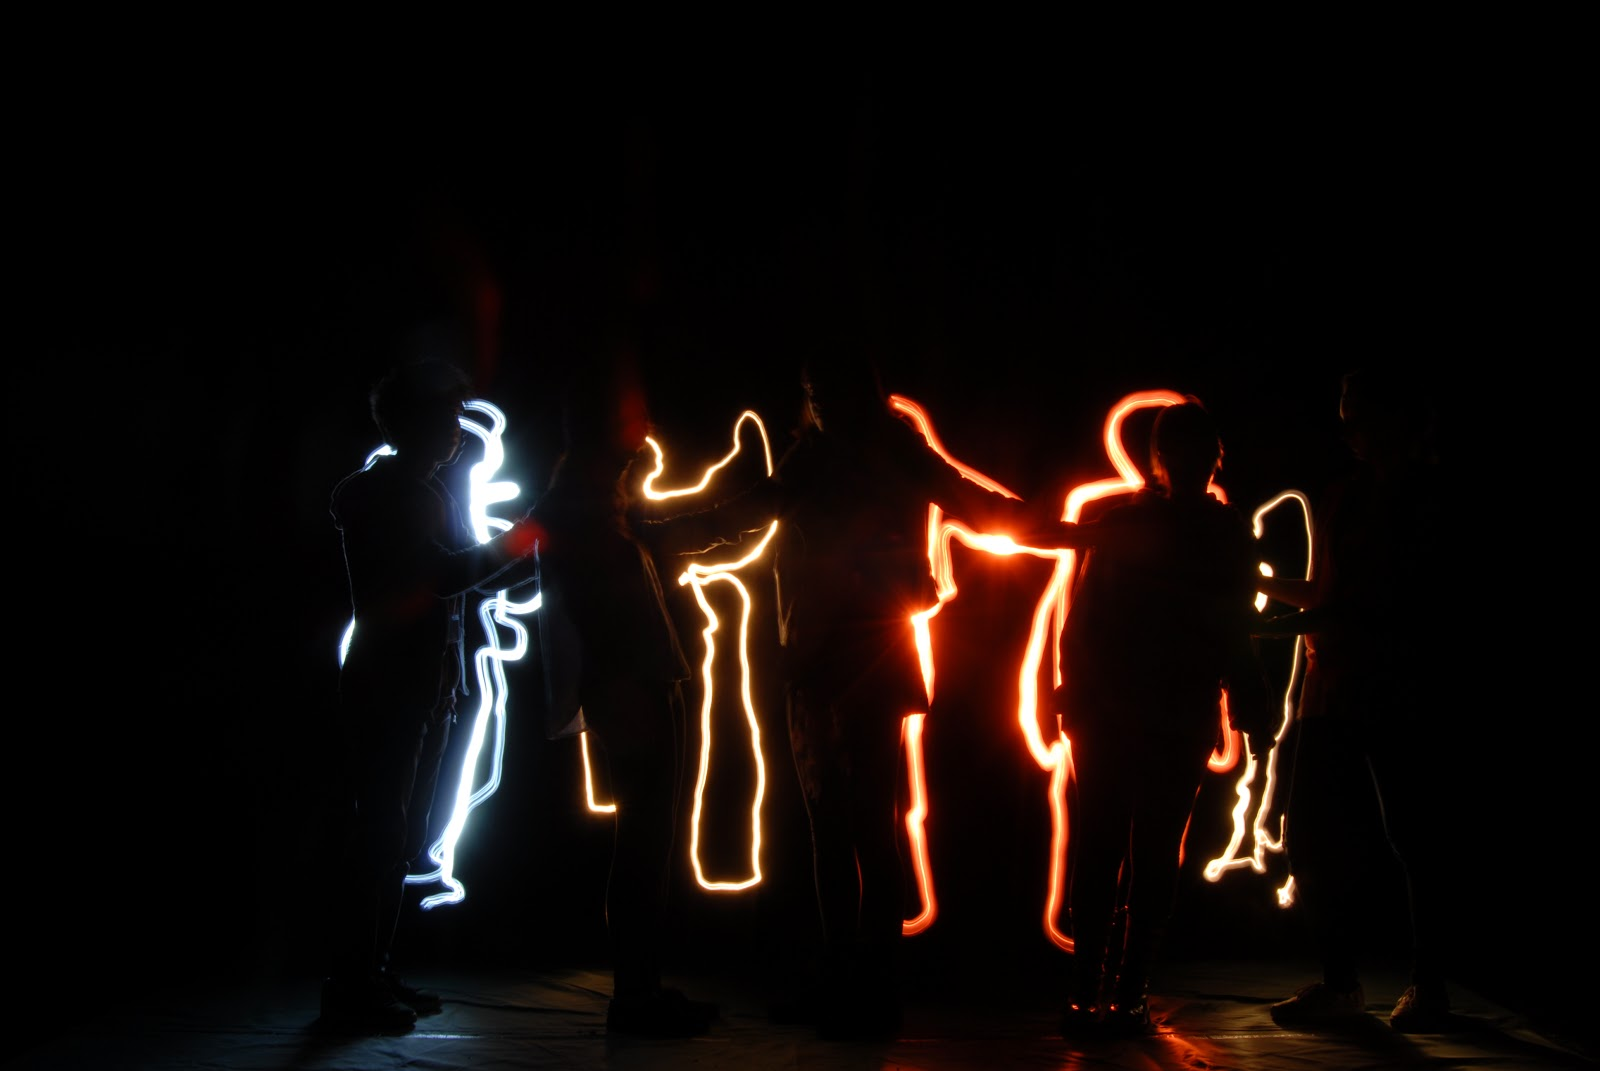 Light Painting Is A Method That Uses Long Exposure Photography And Torches To Create An Image